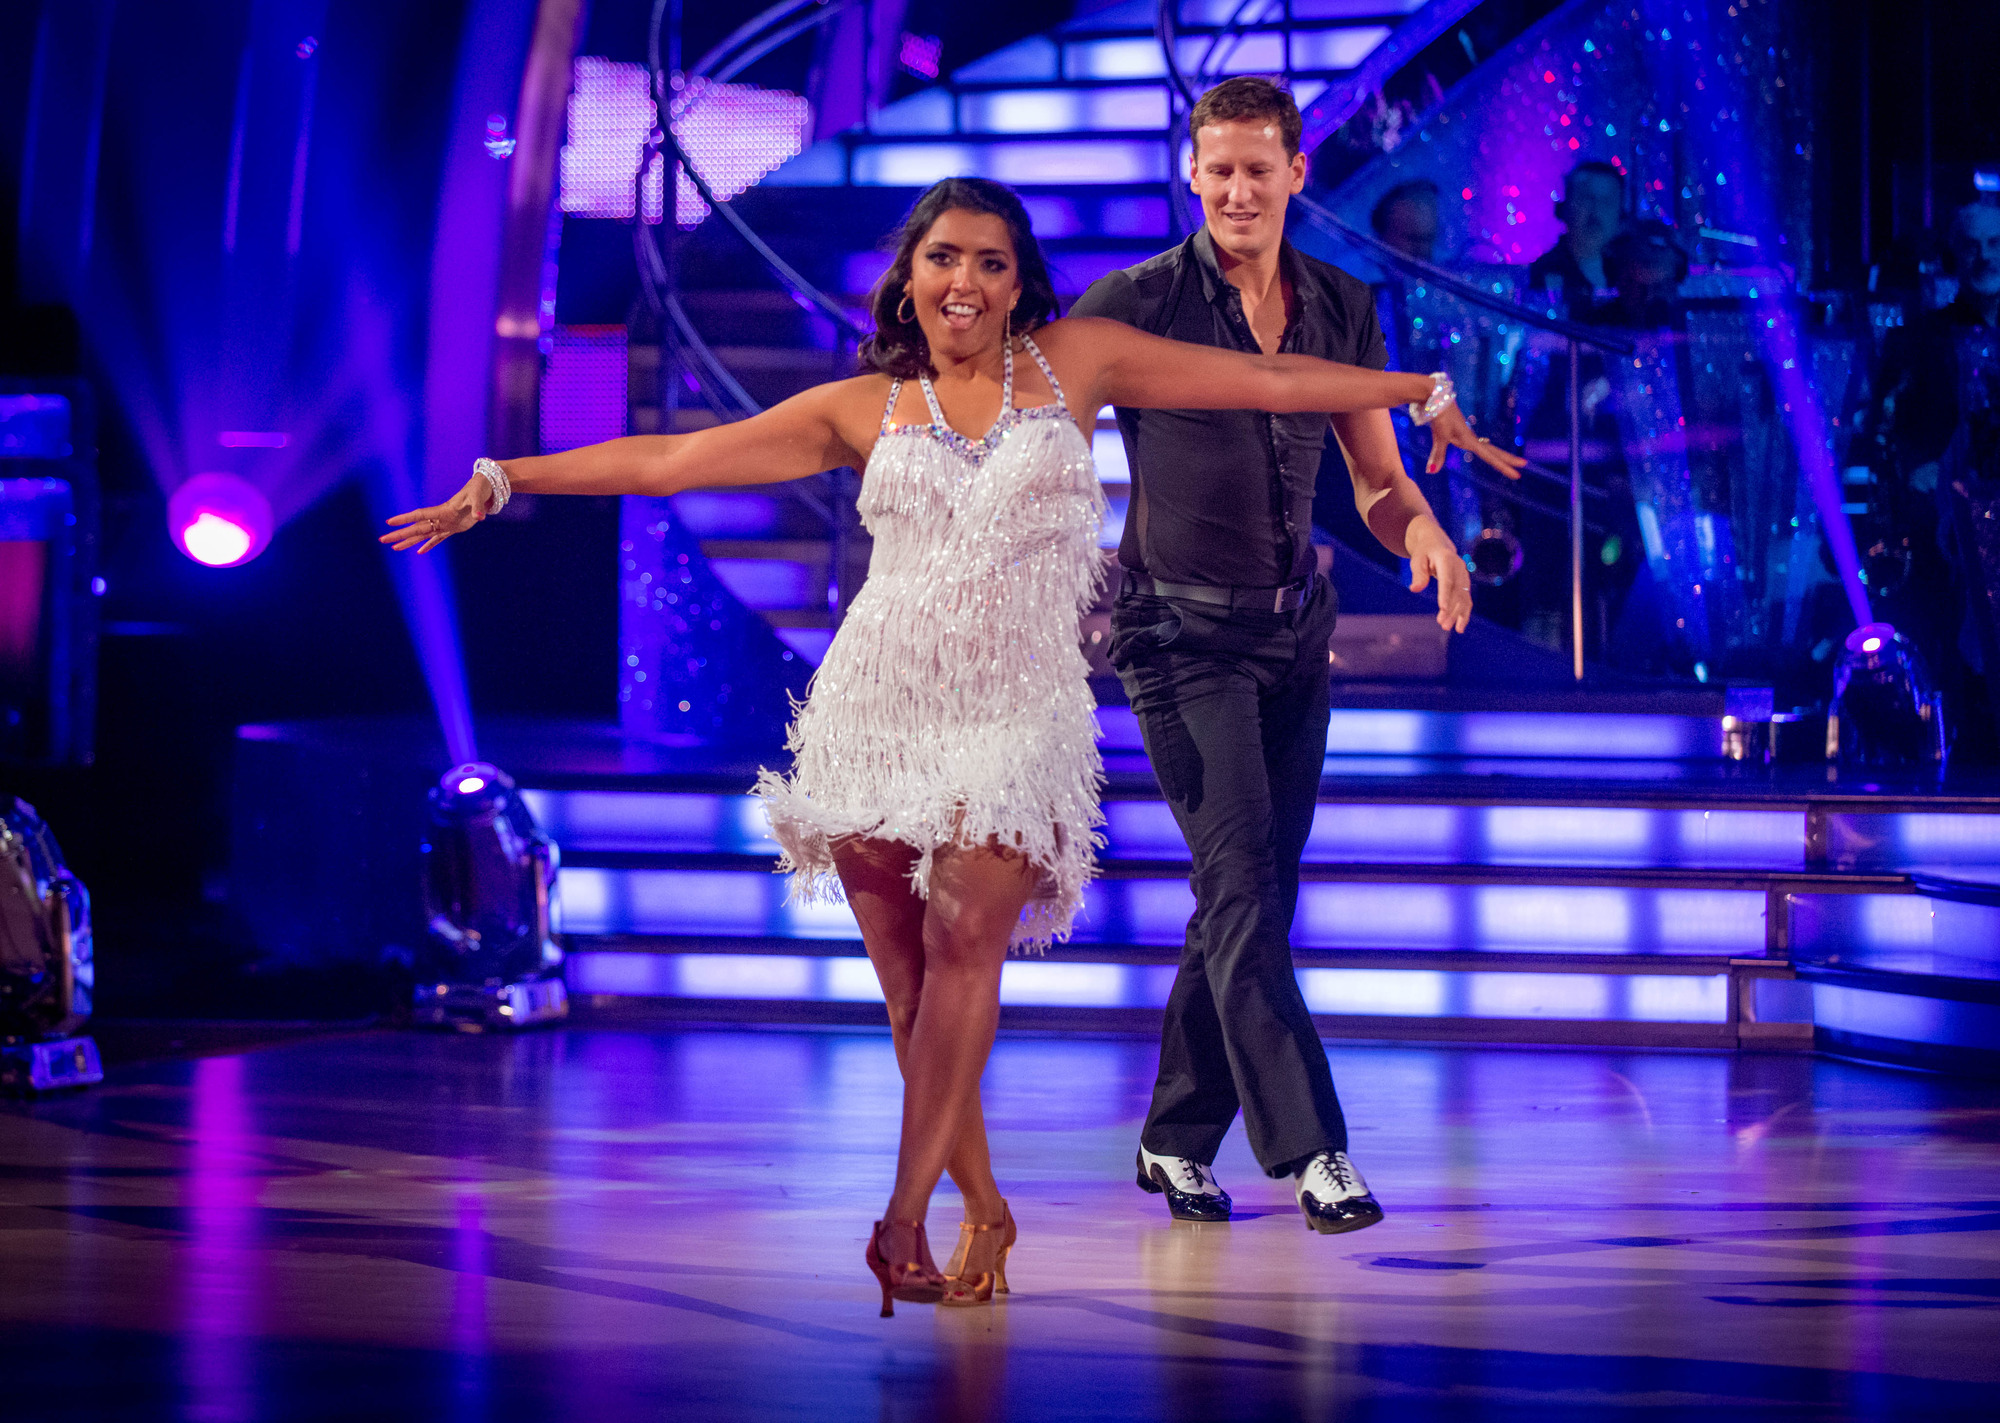 Strictly Come Dancing 2014: Sunetra Sarker's been getting tips from Casualty co-star Patrick Robinson